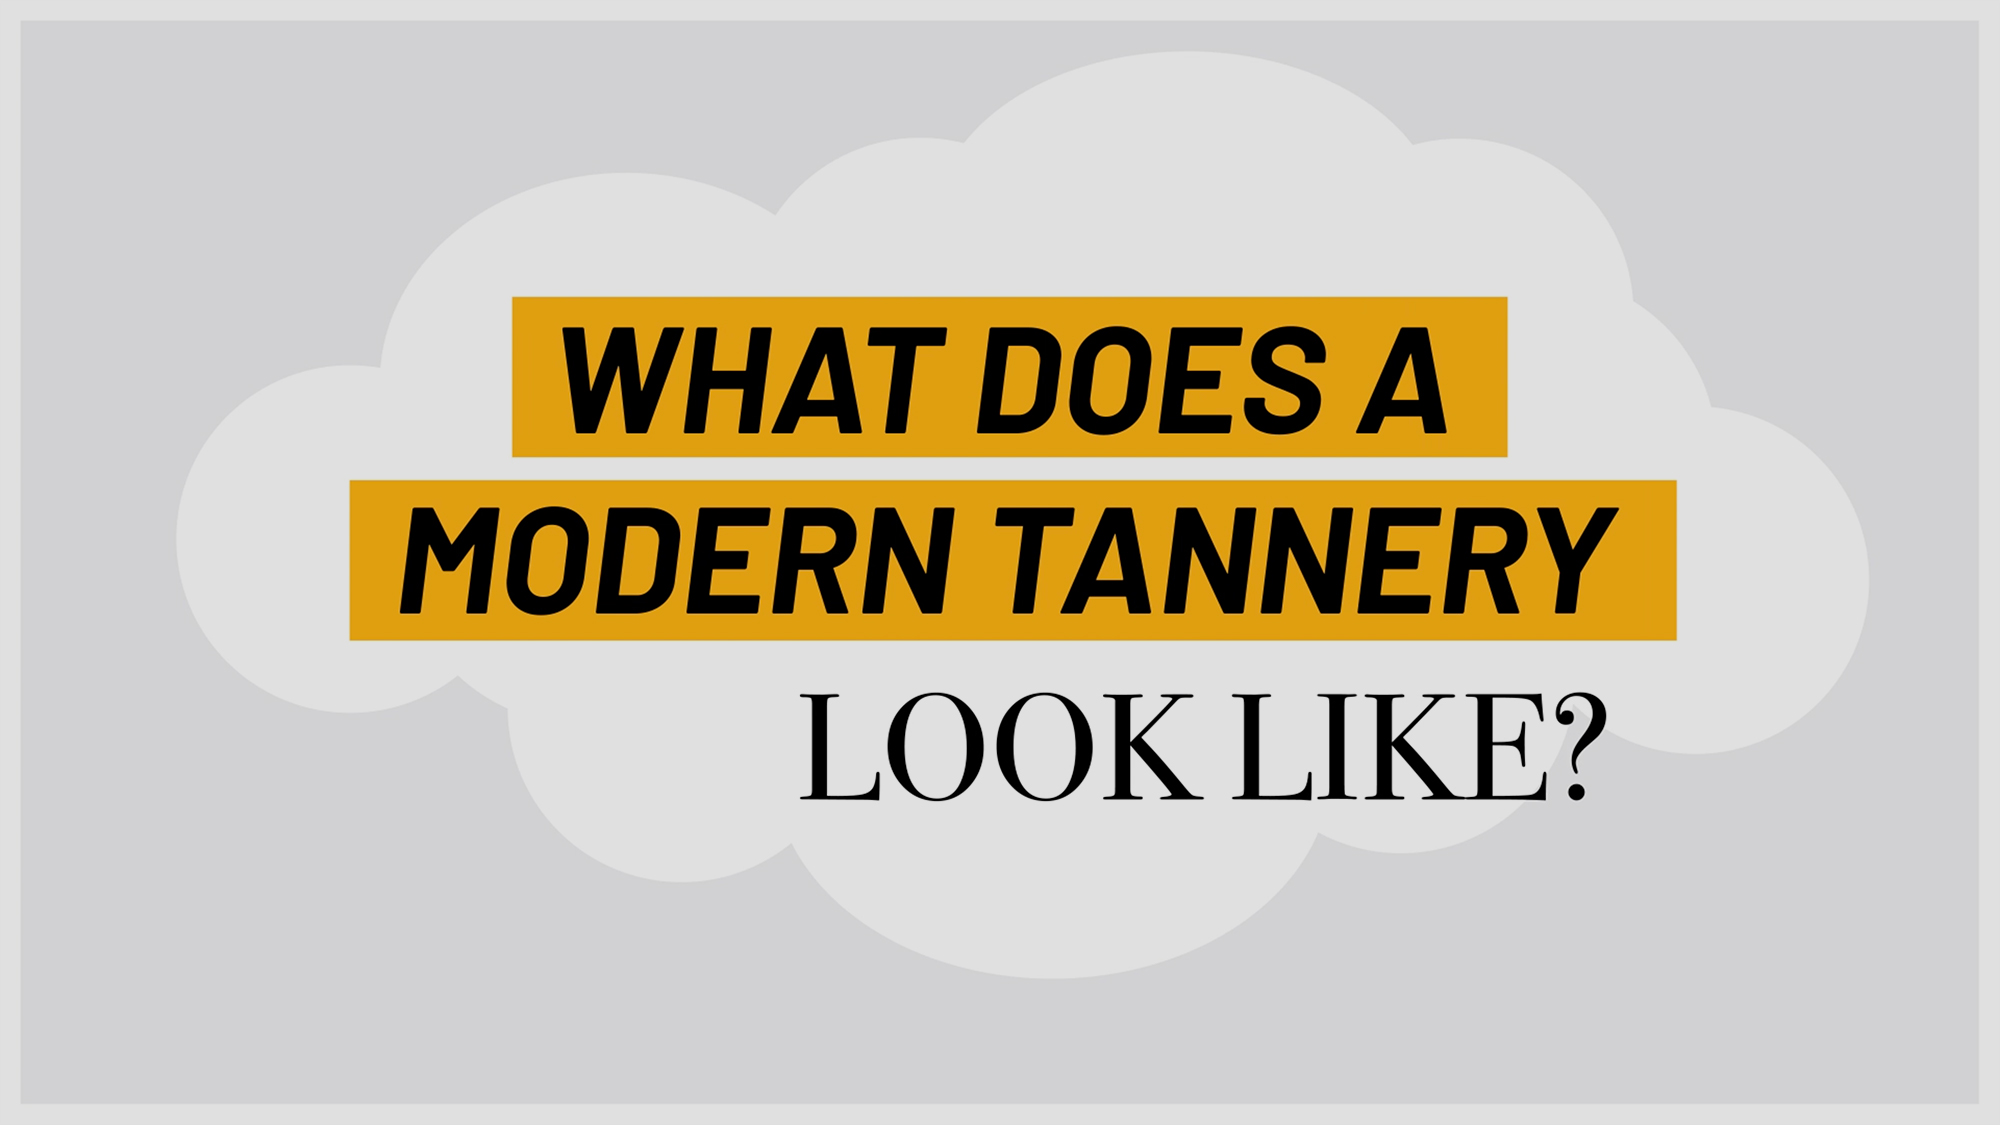 a-modern-tannery-is-a-state-of-the-art-facility